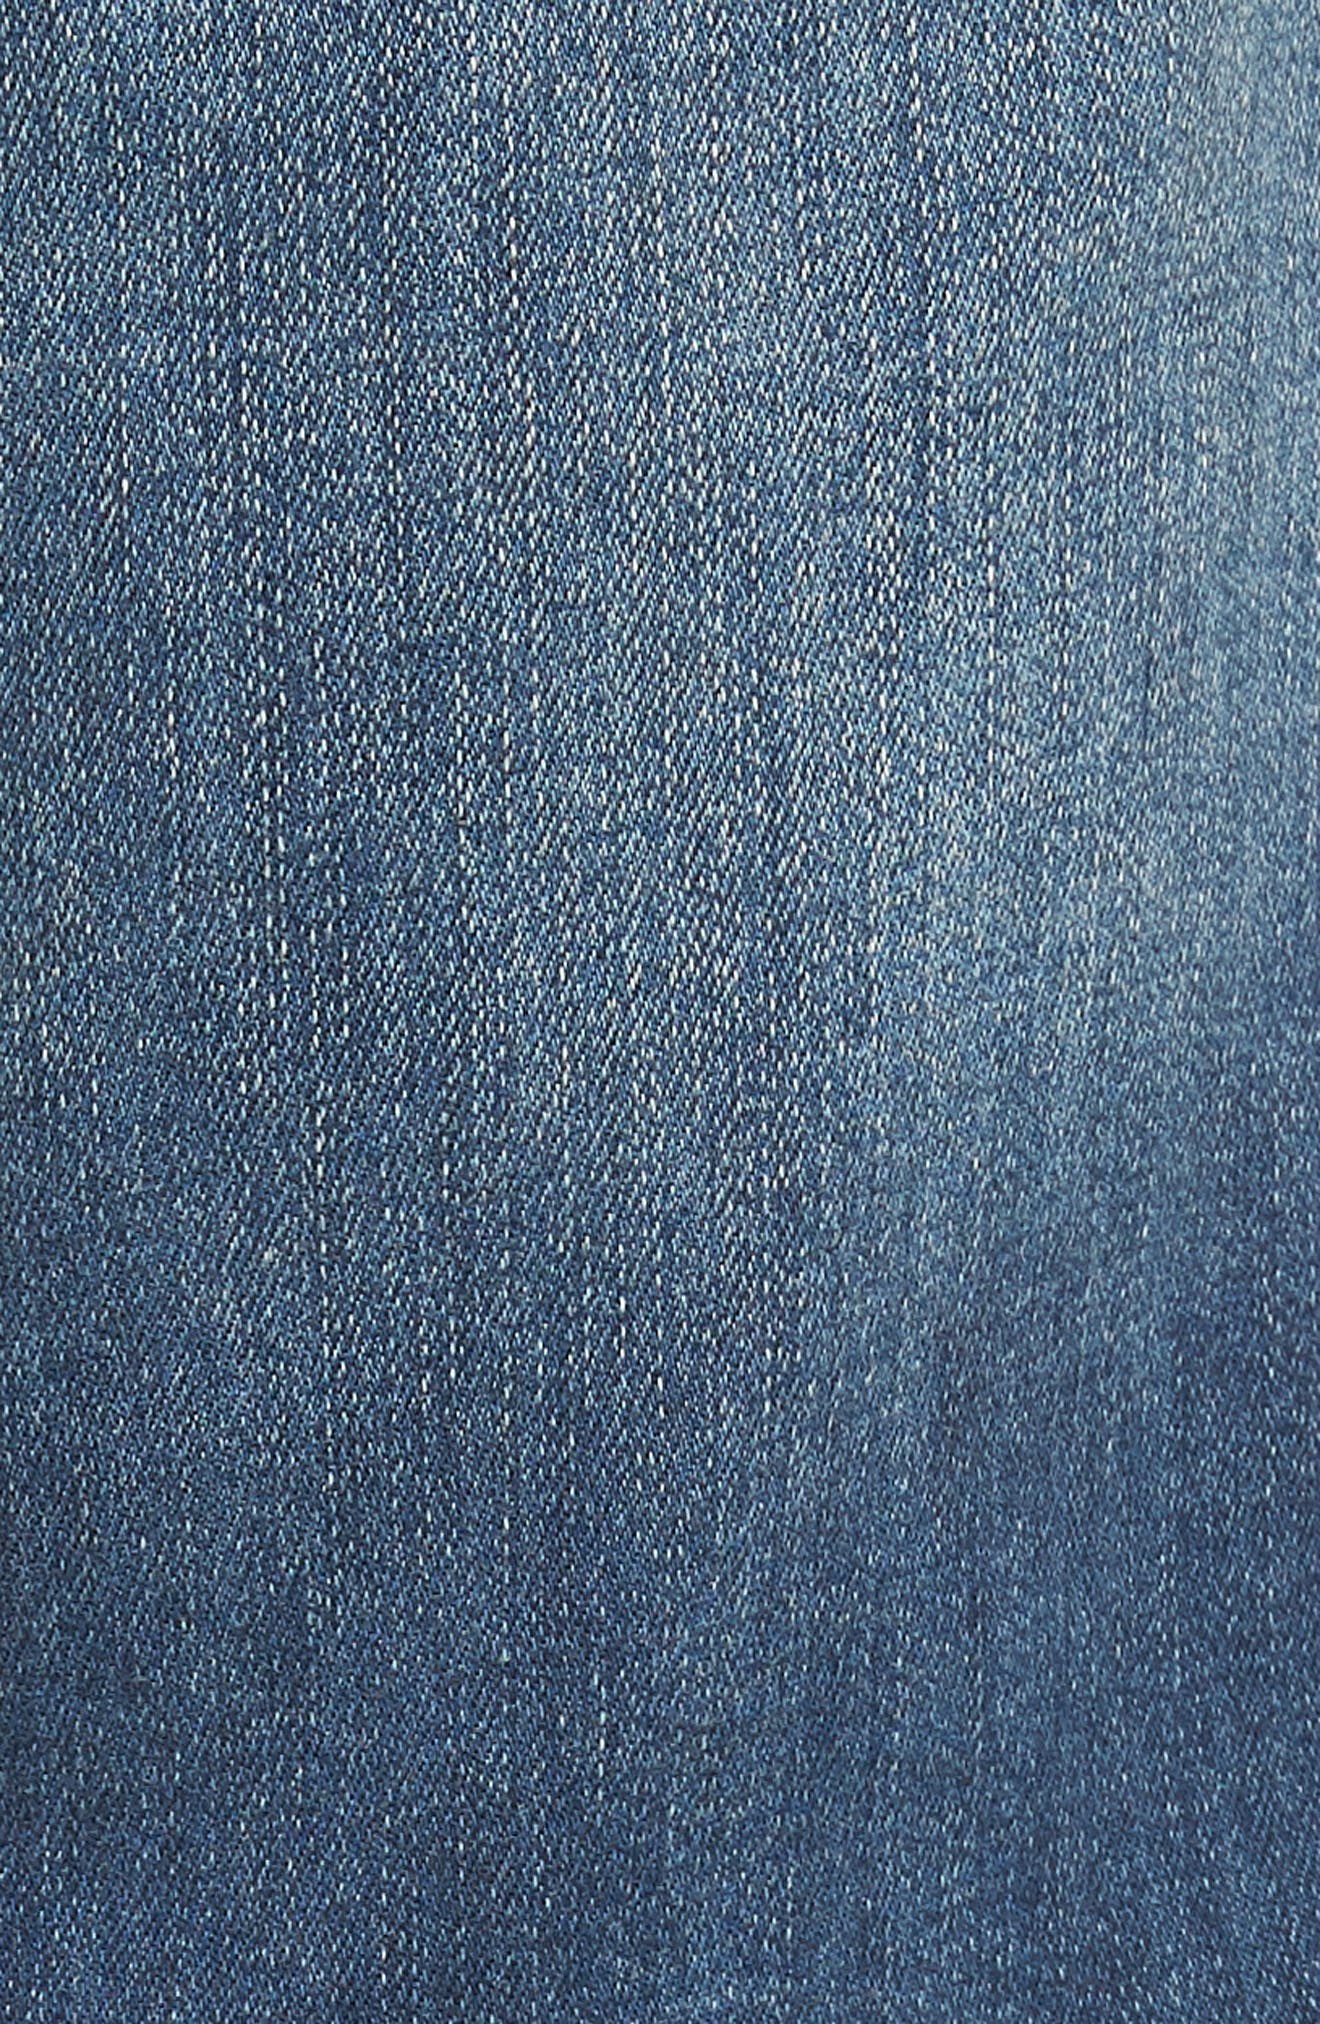 Jeans Co. Regent Relaxed Fit Jeans,                             Alternate thumbnail 5, color,                             CHATSWORTH